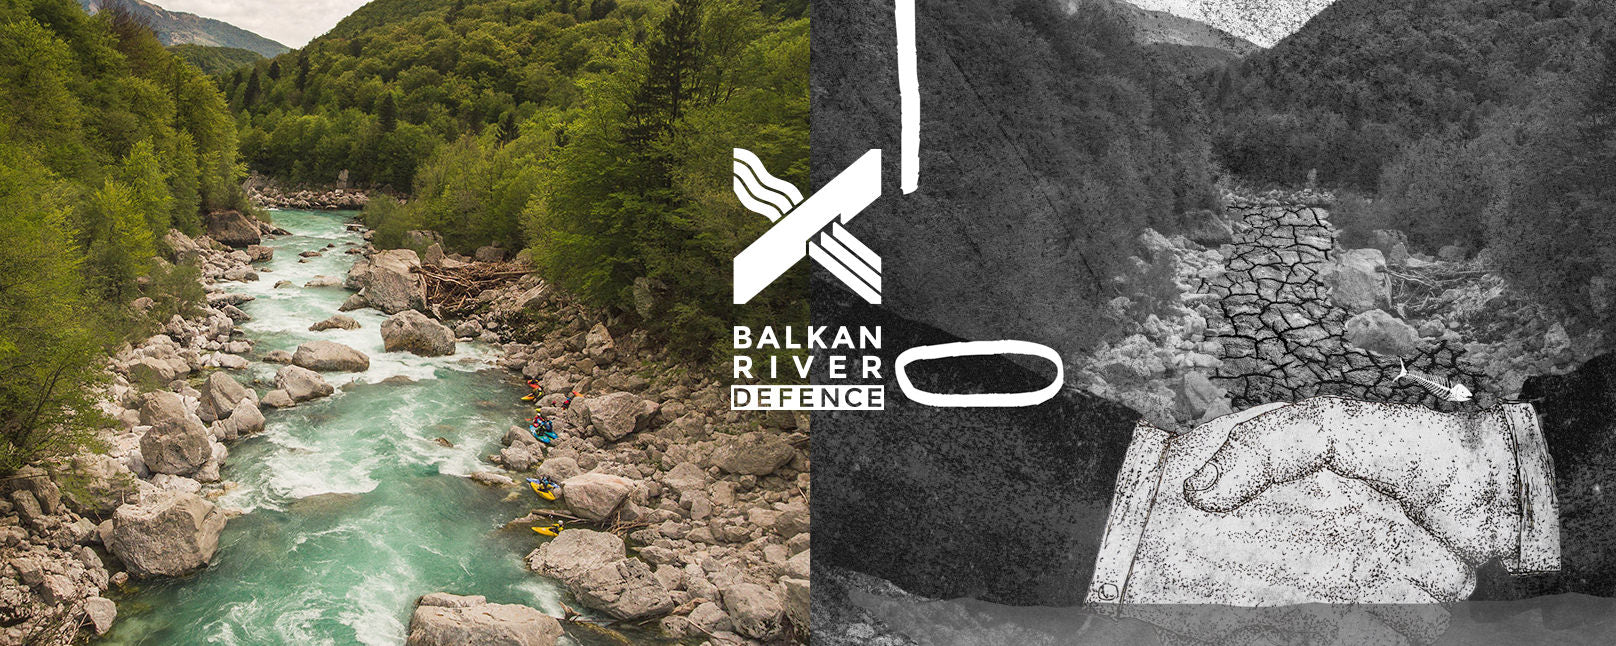 Balkan River Defence